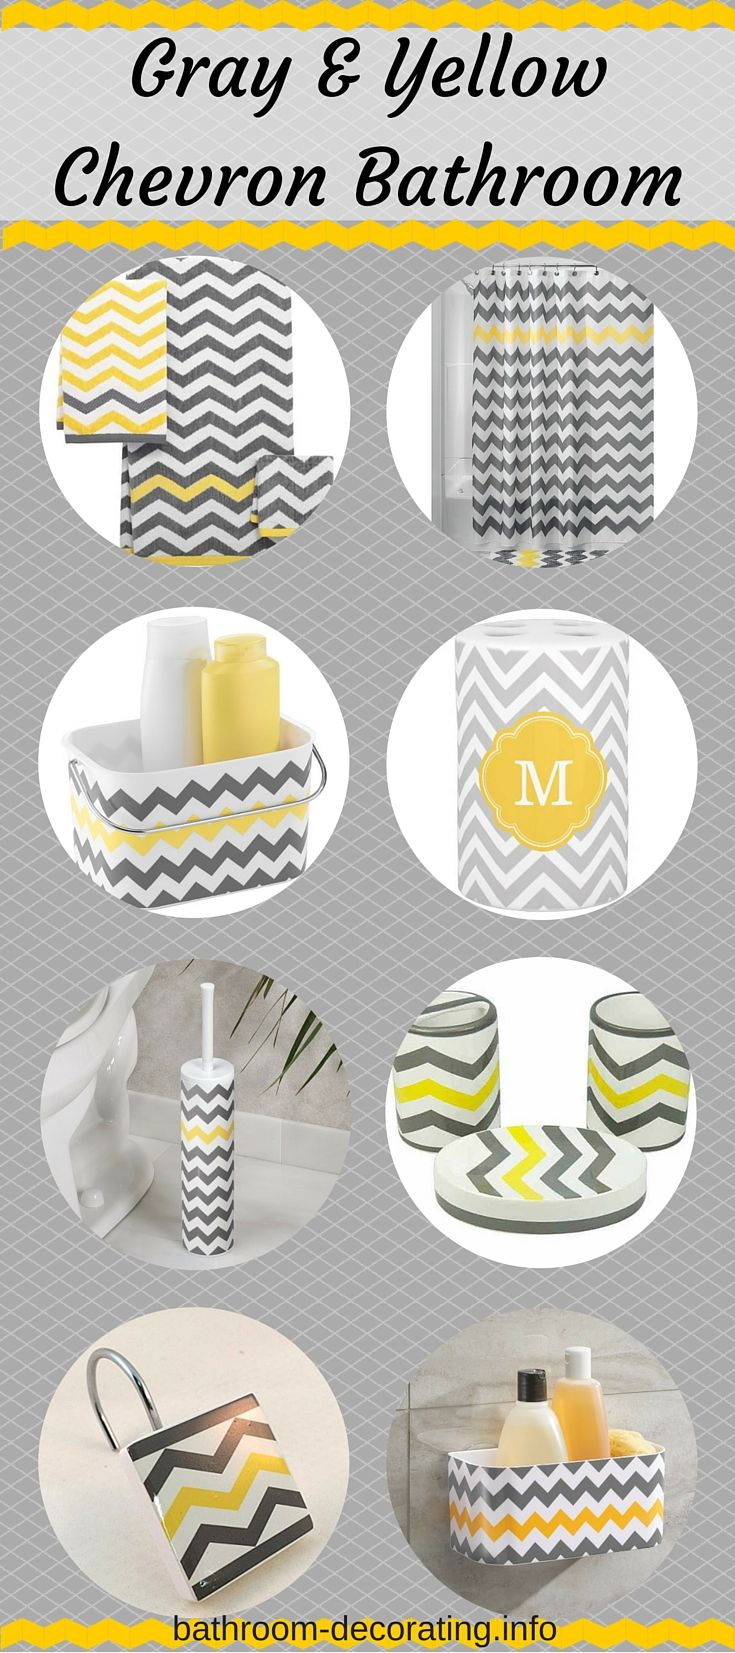 Chevron Bathroom Decor Bathroom Decorating Chevron Bathroom Chevron Bathroom Decor Yellow Bathroom Decor